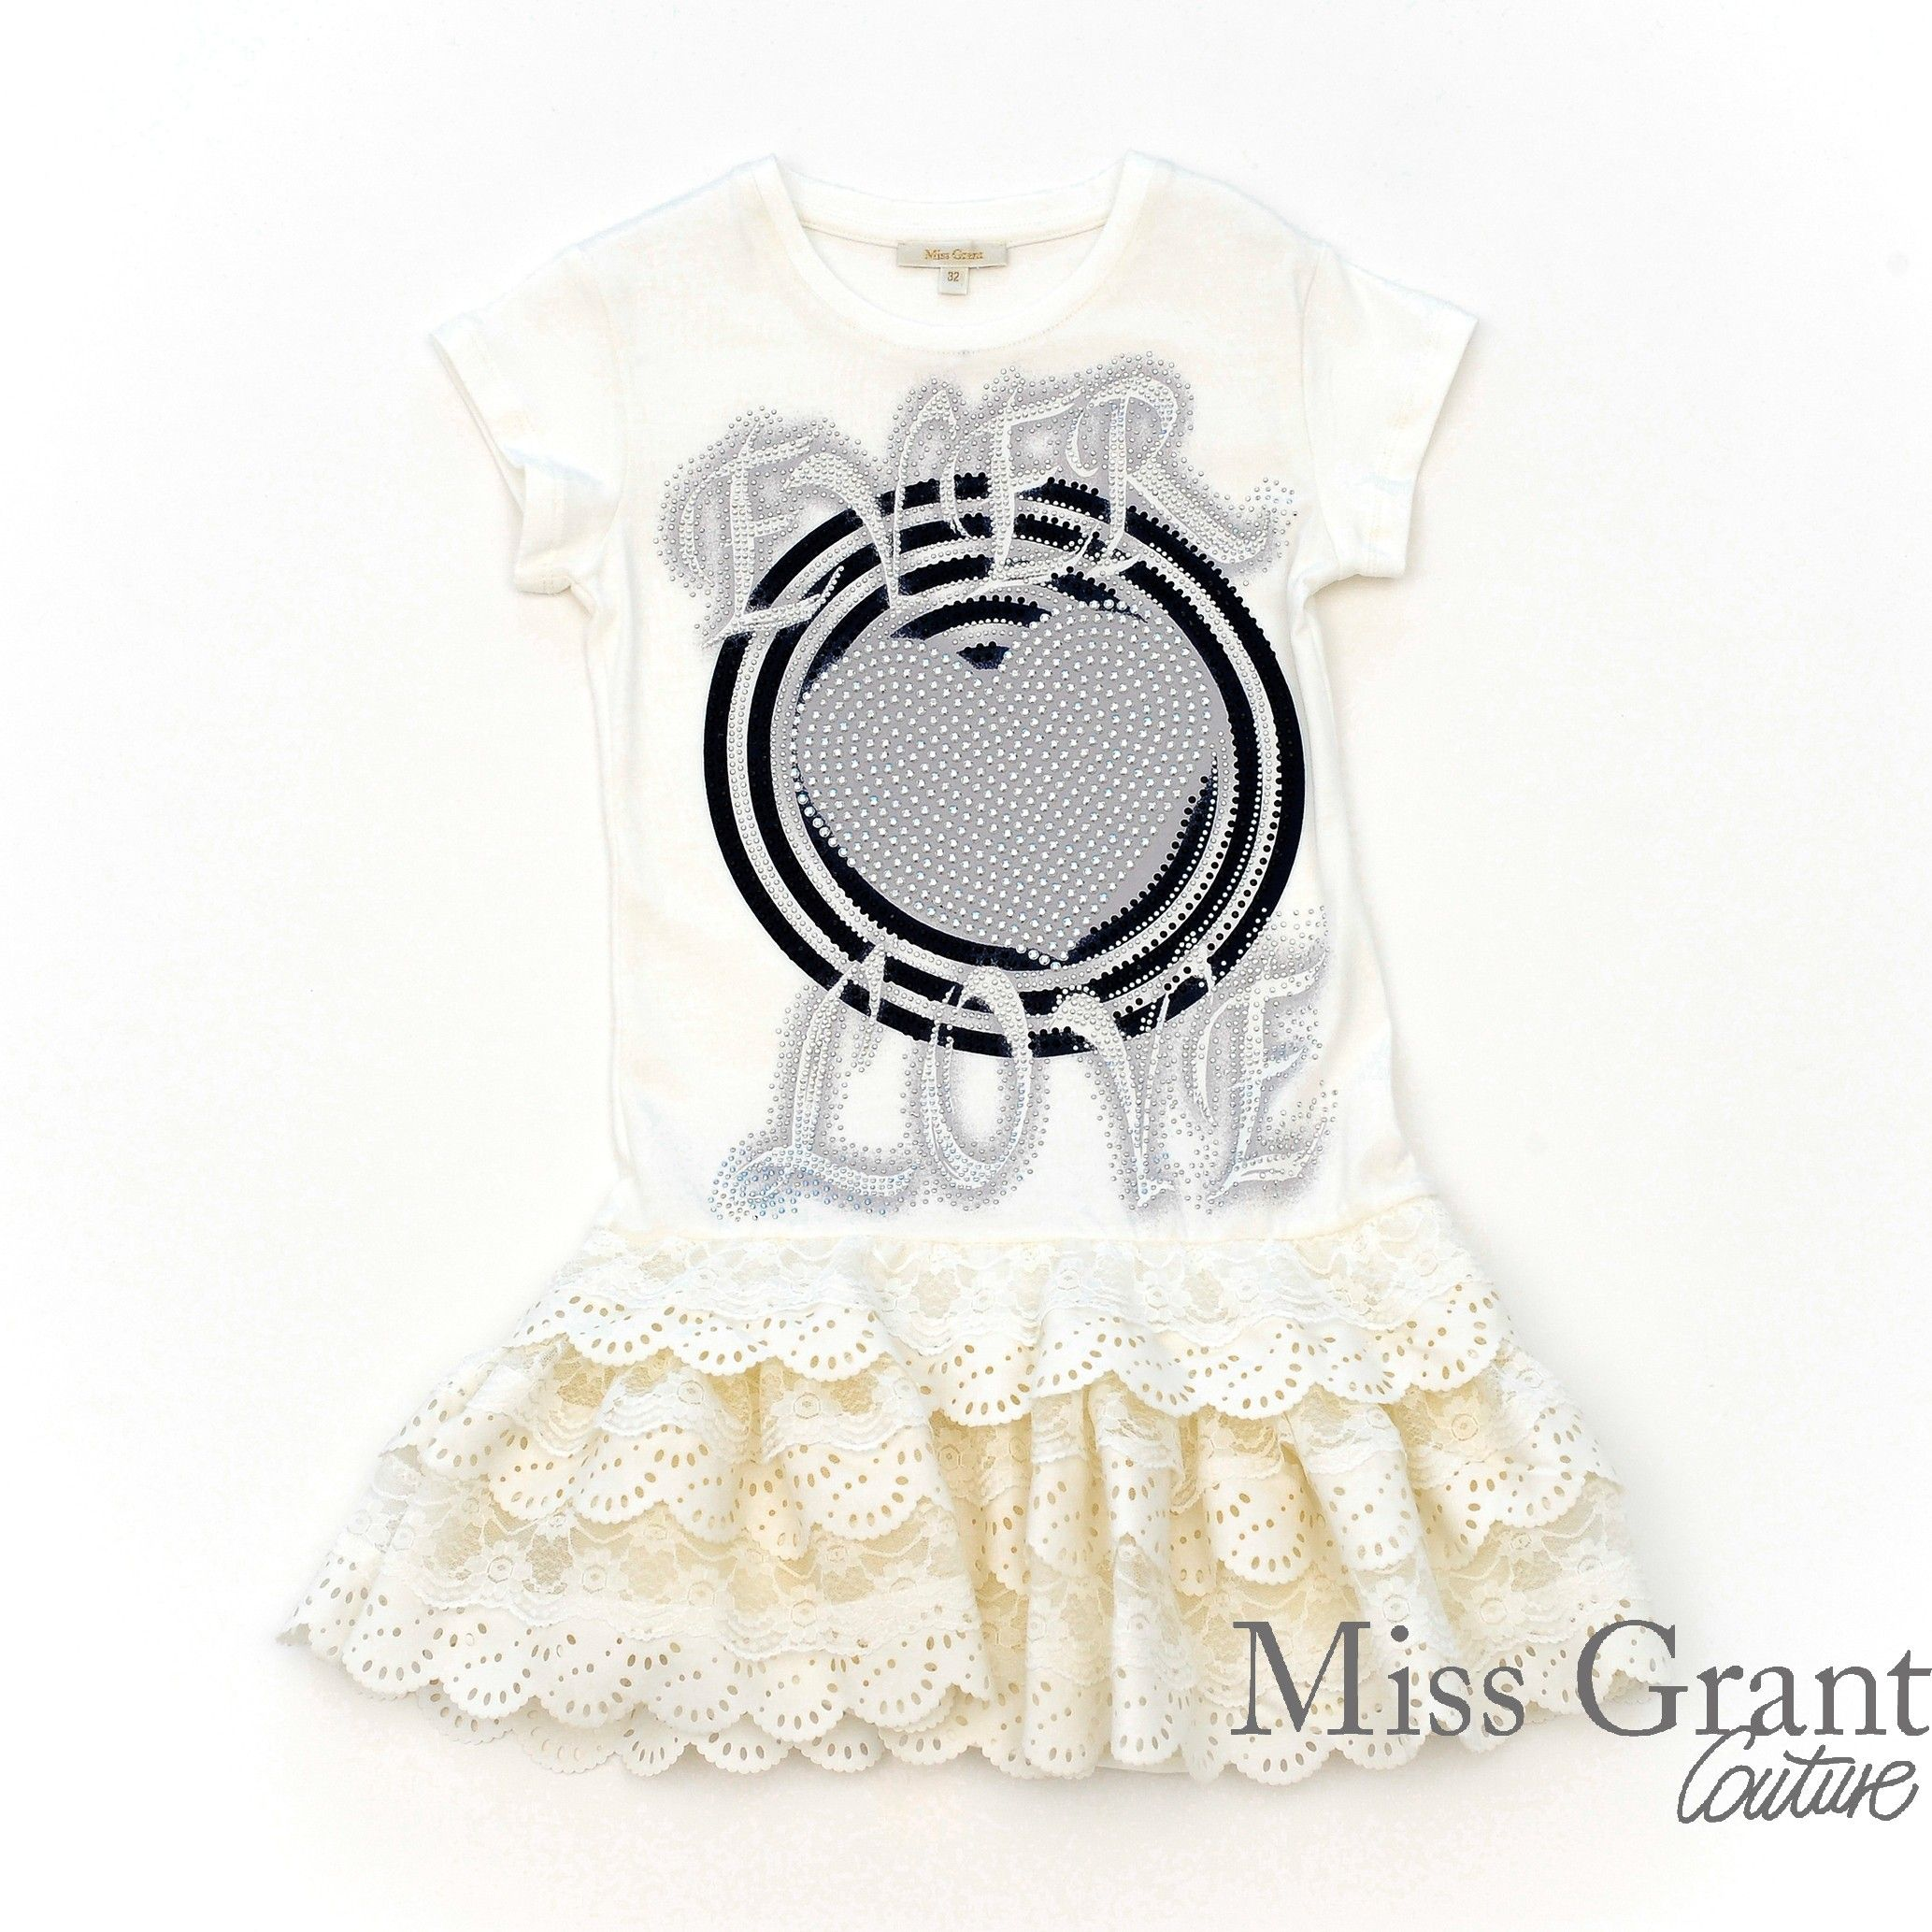 Miss Grant Cotton dress with contrasting print and flounced skirt